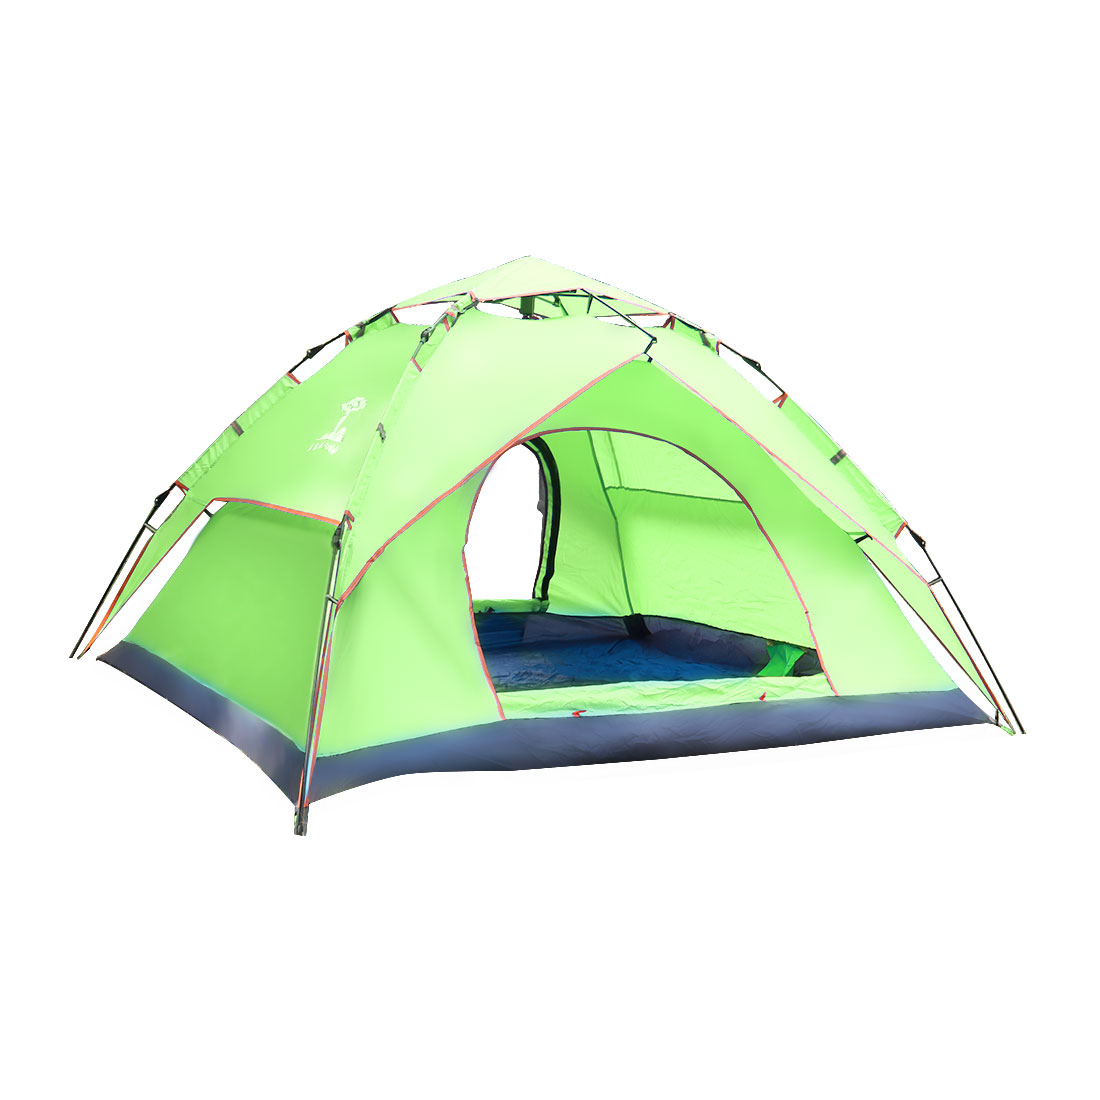 Double Layer Sun Shelter Water Resistant Pop Up Automatic Tent 3-4 Person Fluorescent Green